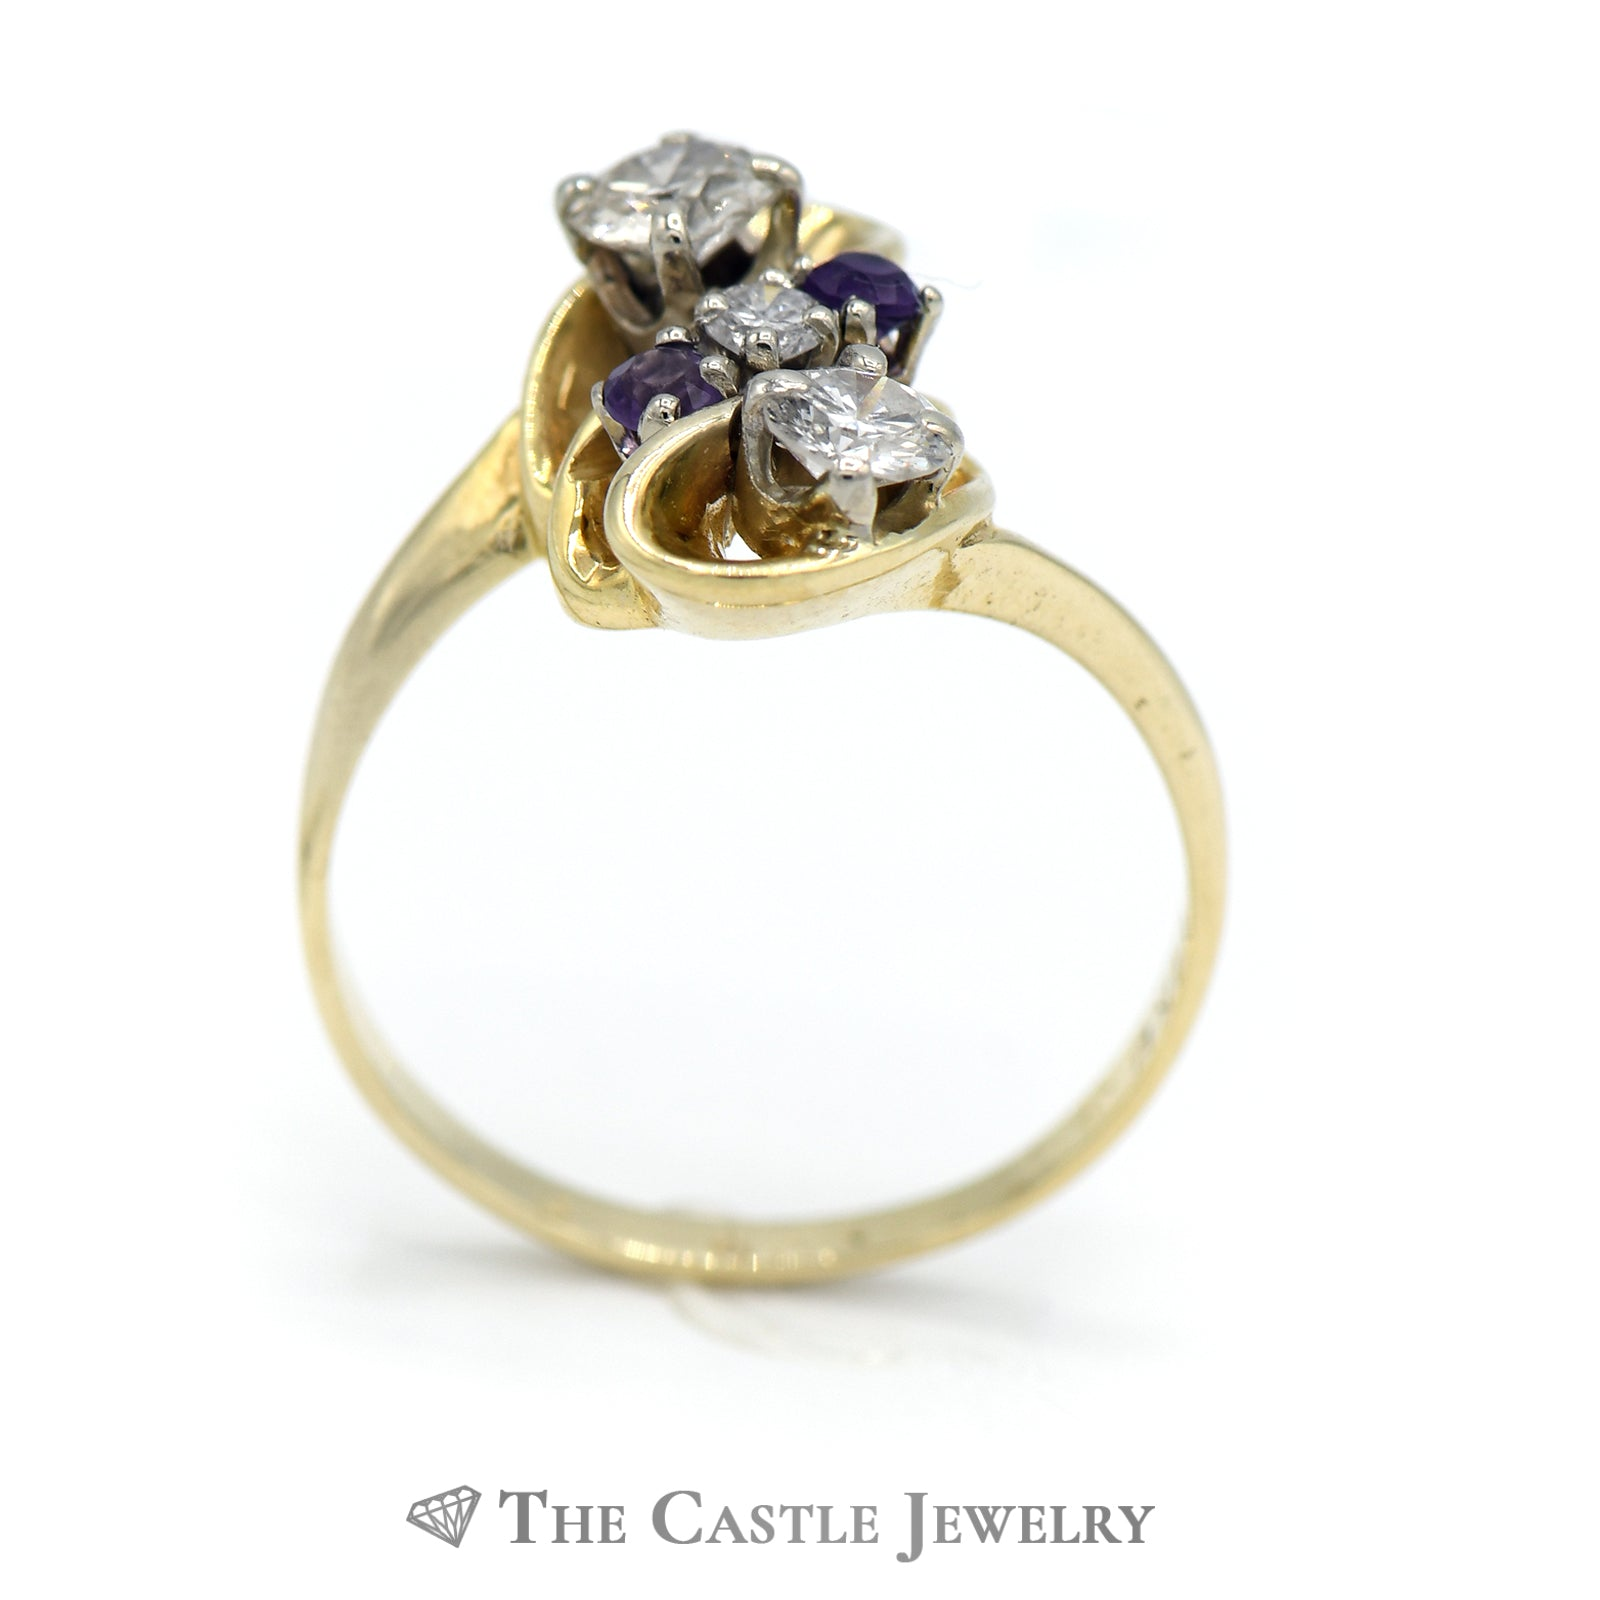 Fancy Design Diamond Ring With Amethyst Accents in 14K Yellow Gold-1